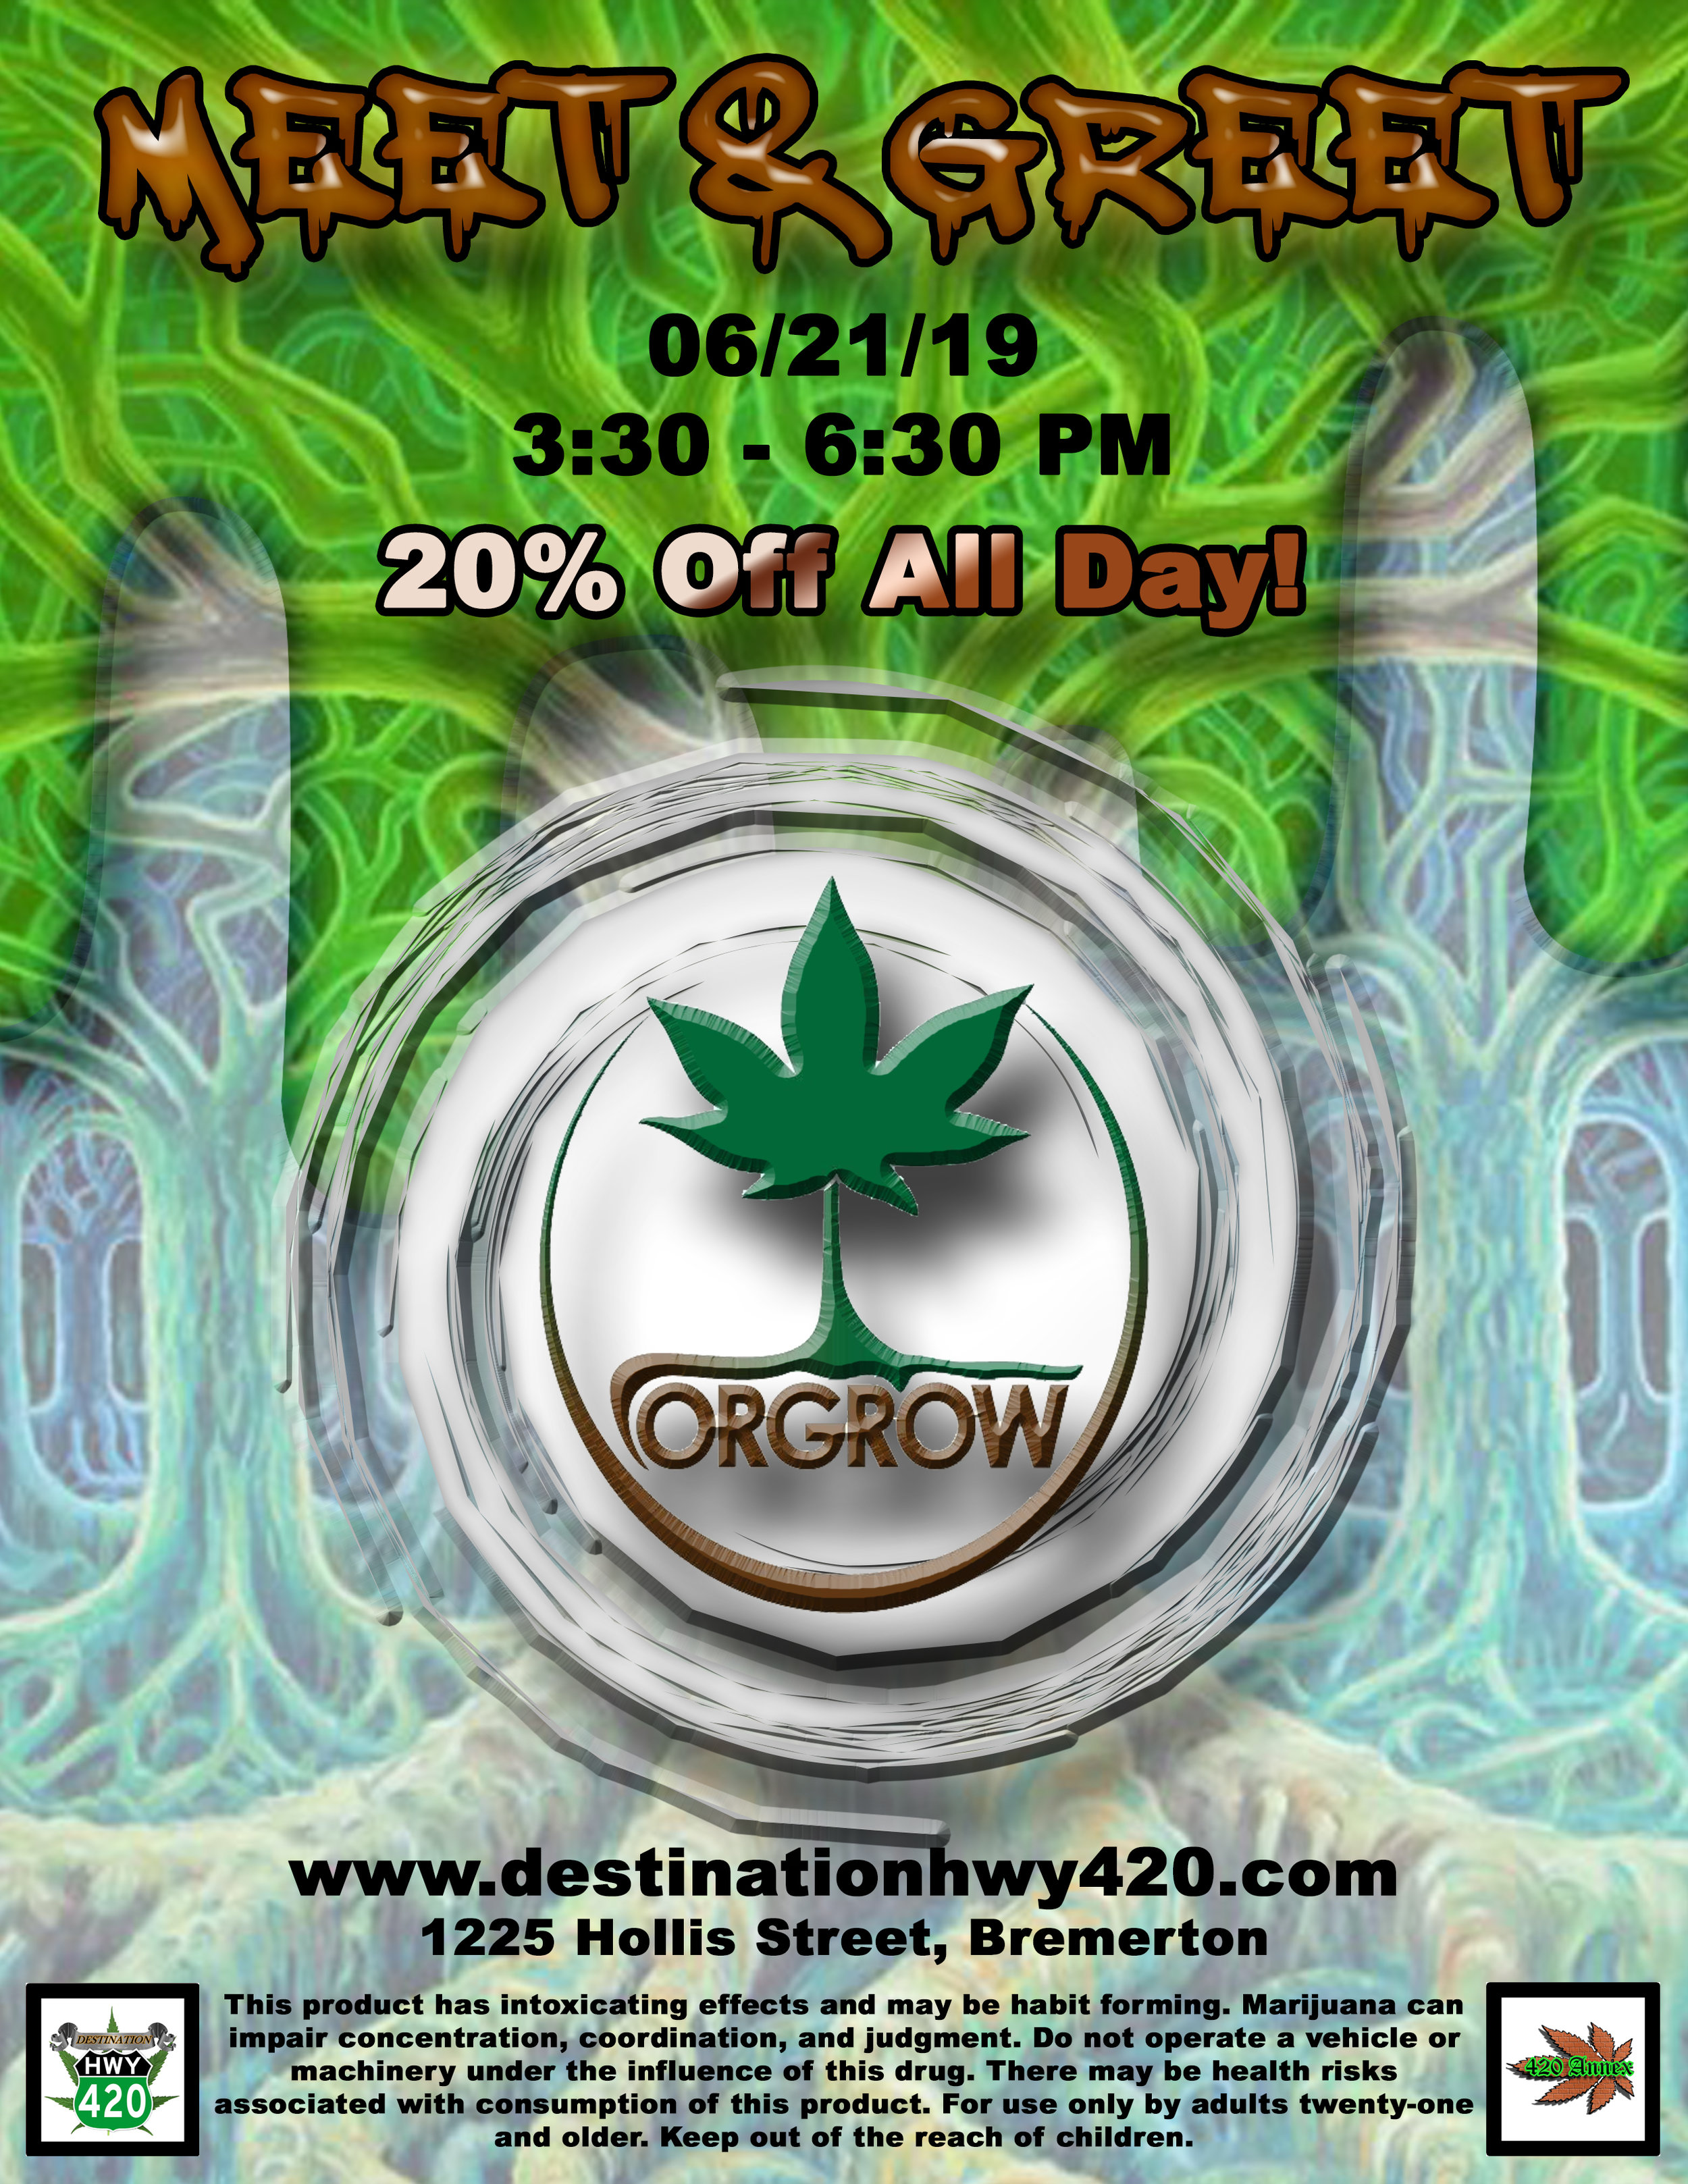 Orgrow is a Tier-3 marijuana producer/processor based out of Yakima Valley, WA. Orgrow produces marijuana flower, prerolled joints, infused joints, edibles, and concentrates. Orgrow products are available at Destination HWY 420 Bremerton!